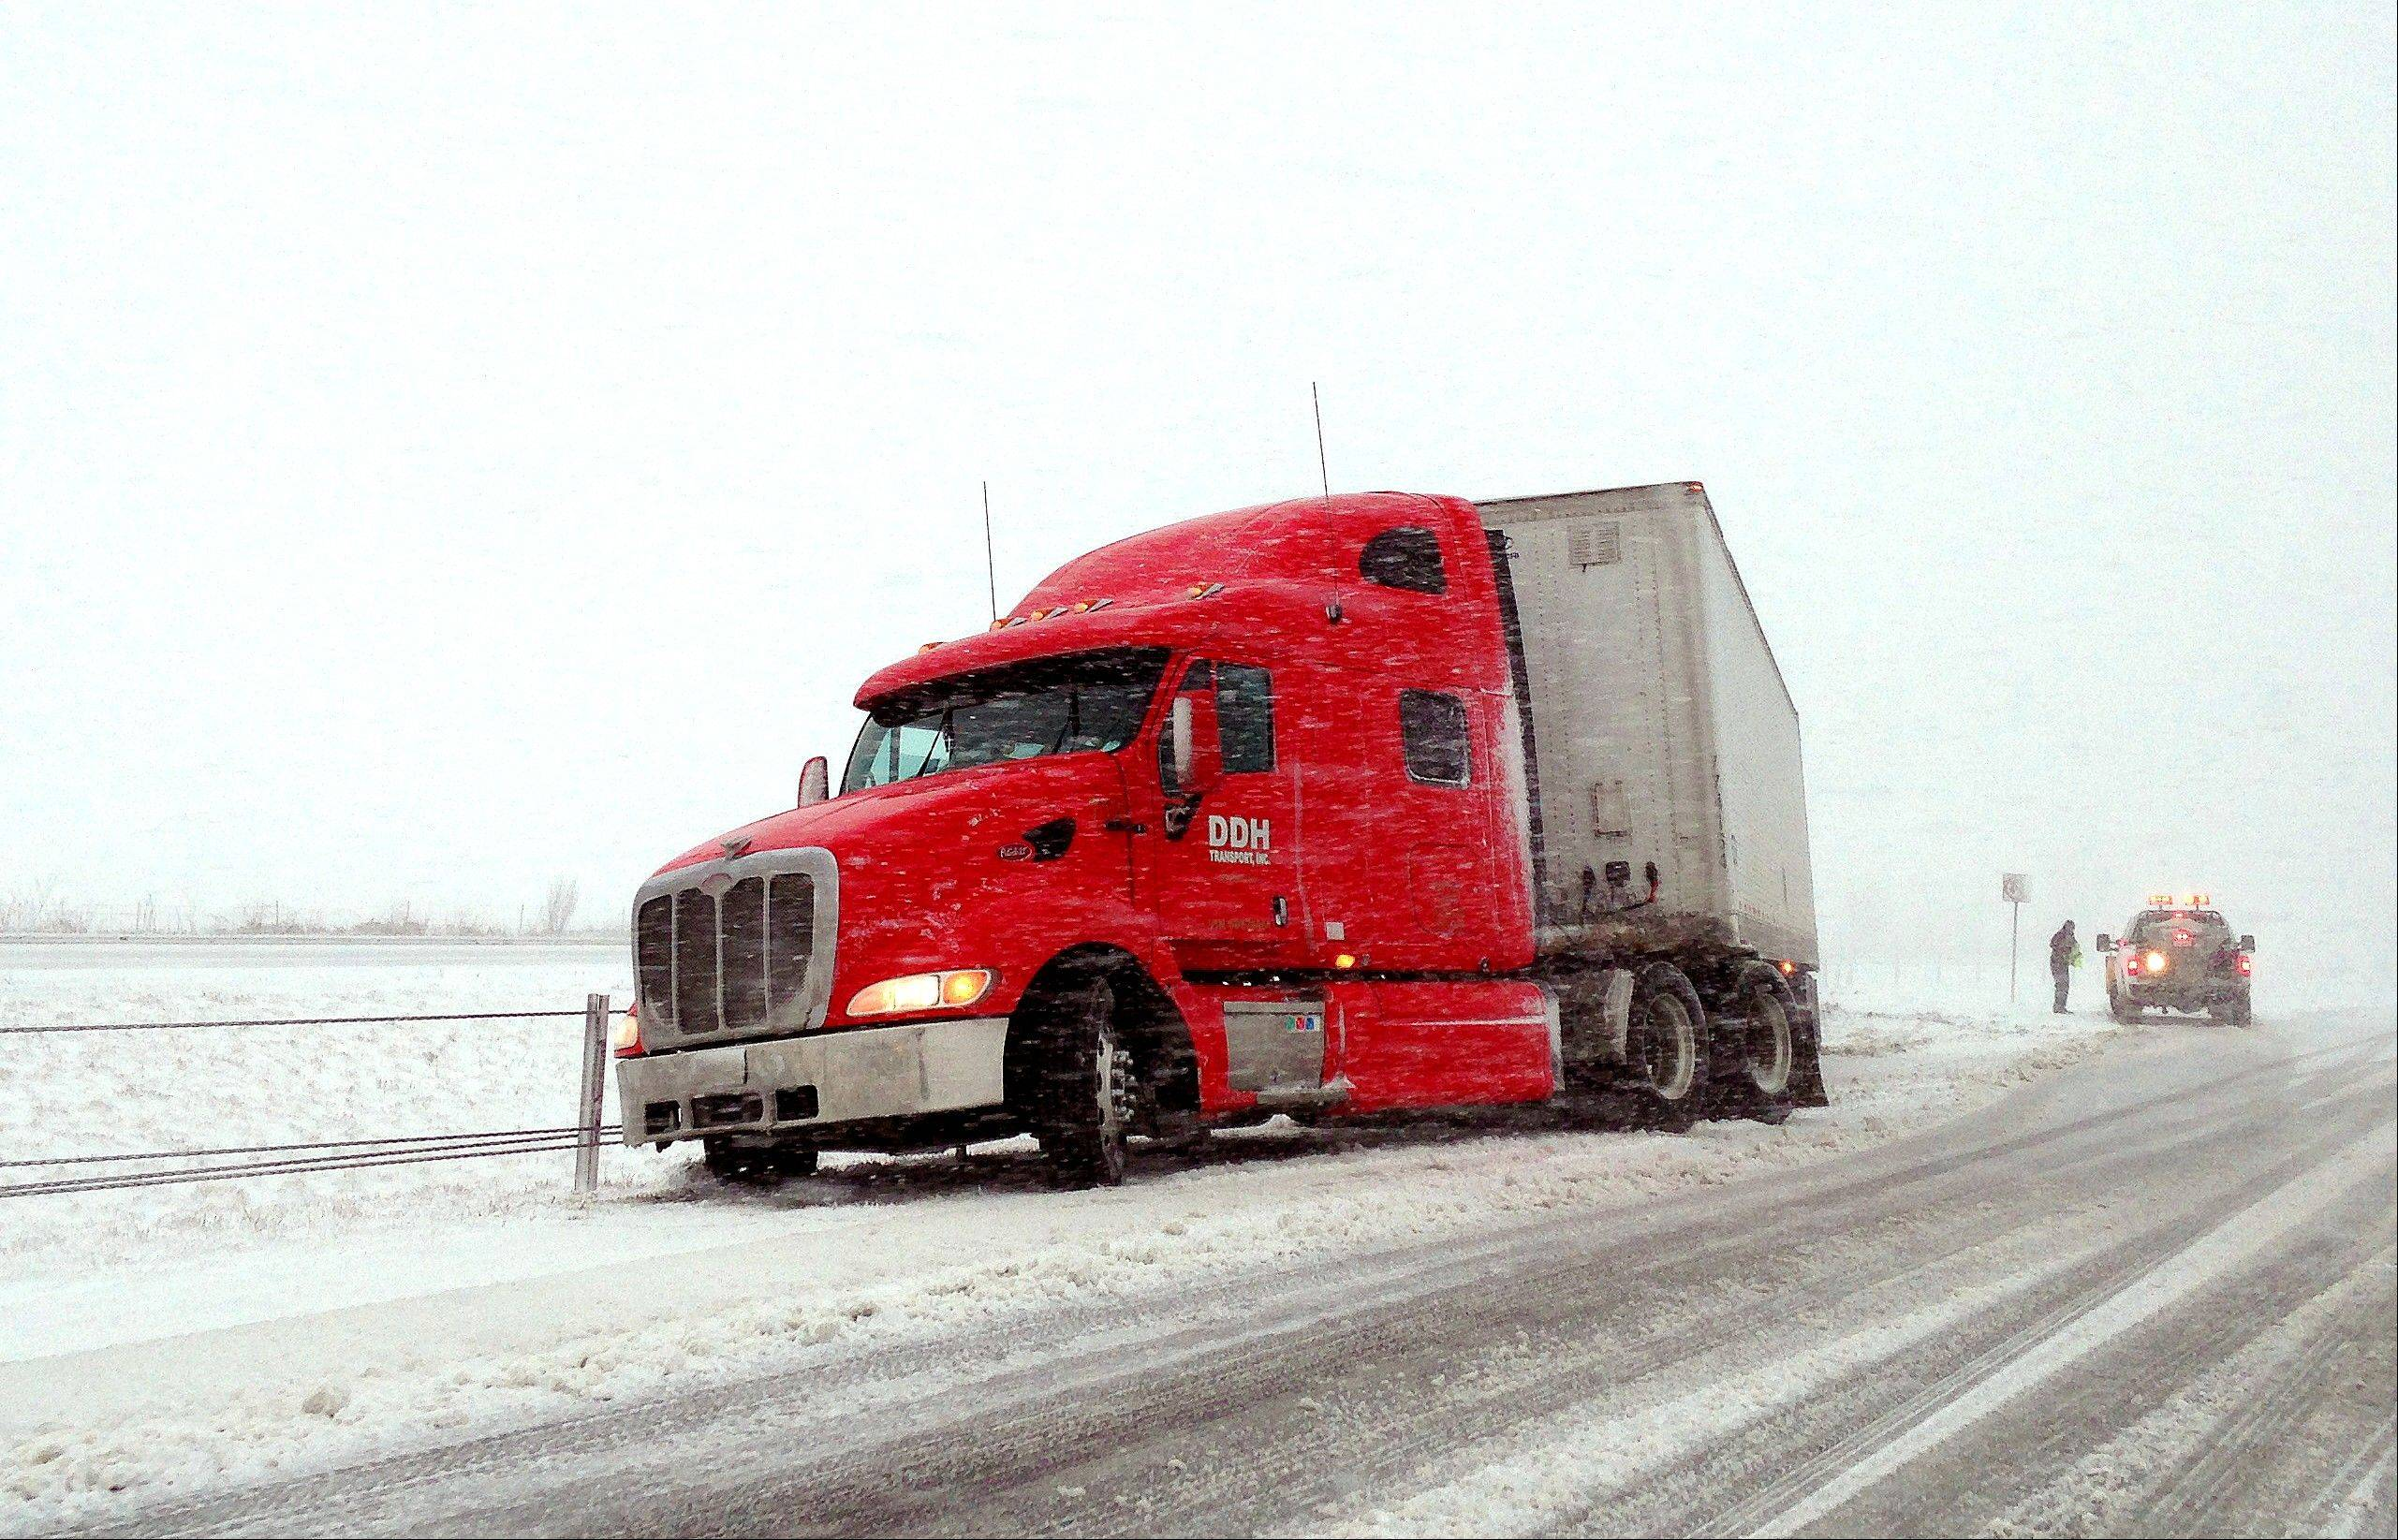 A southbound semitrailer comes to a stop after crossing over into the north bound lanes at mile marker 153 as snow falls near Frankfort, Ind. on Sunday, March 24, 2013. A pair of cars were also involved in the crash but not pictured.